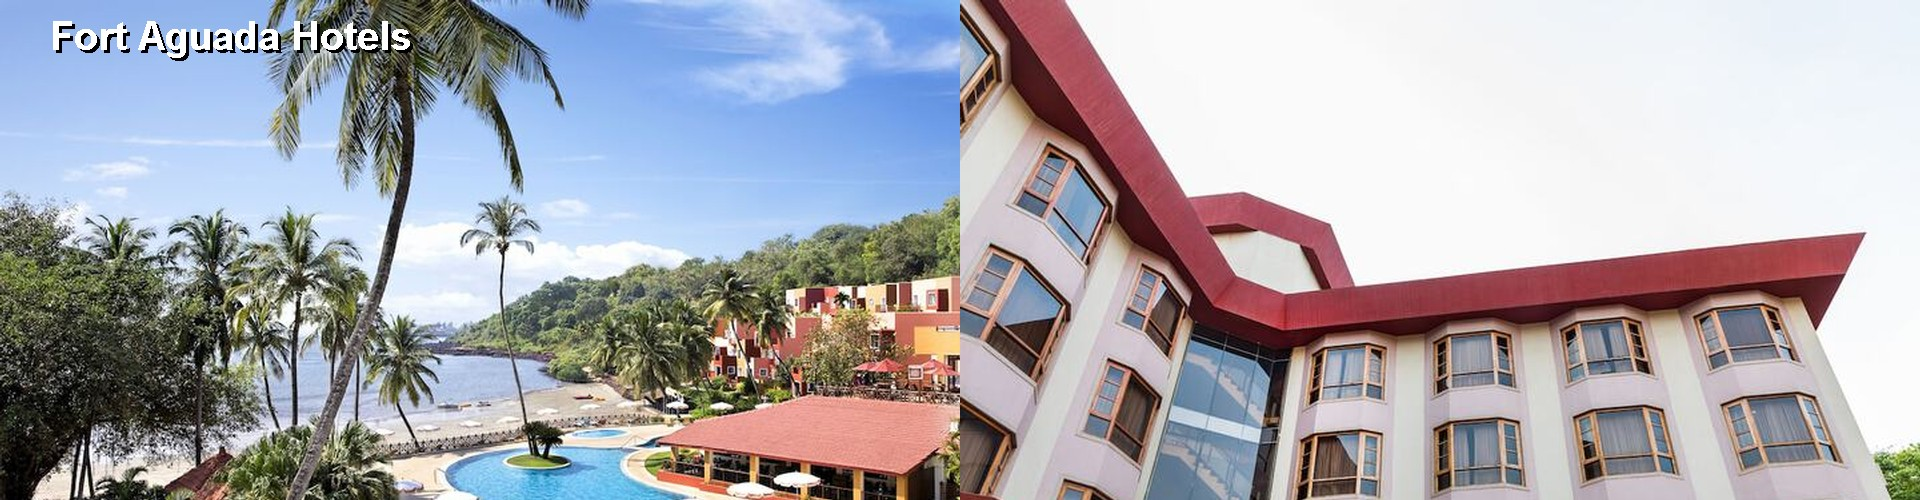 5 Best Hotels near Fort Aguada